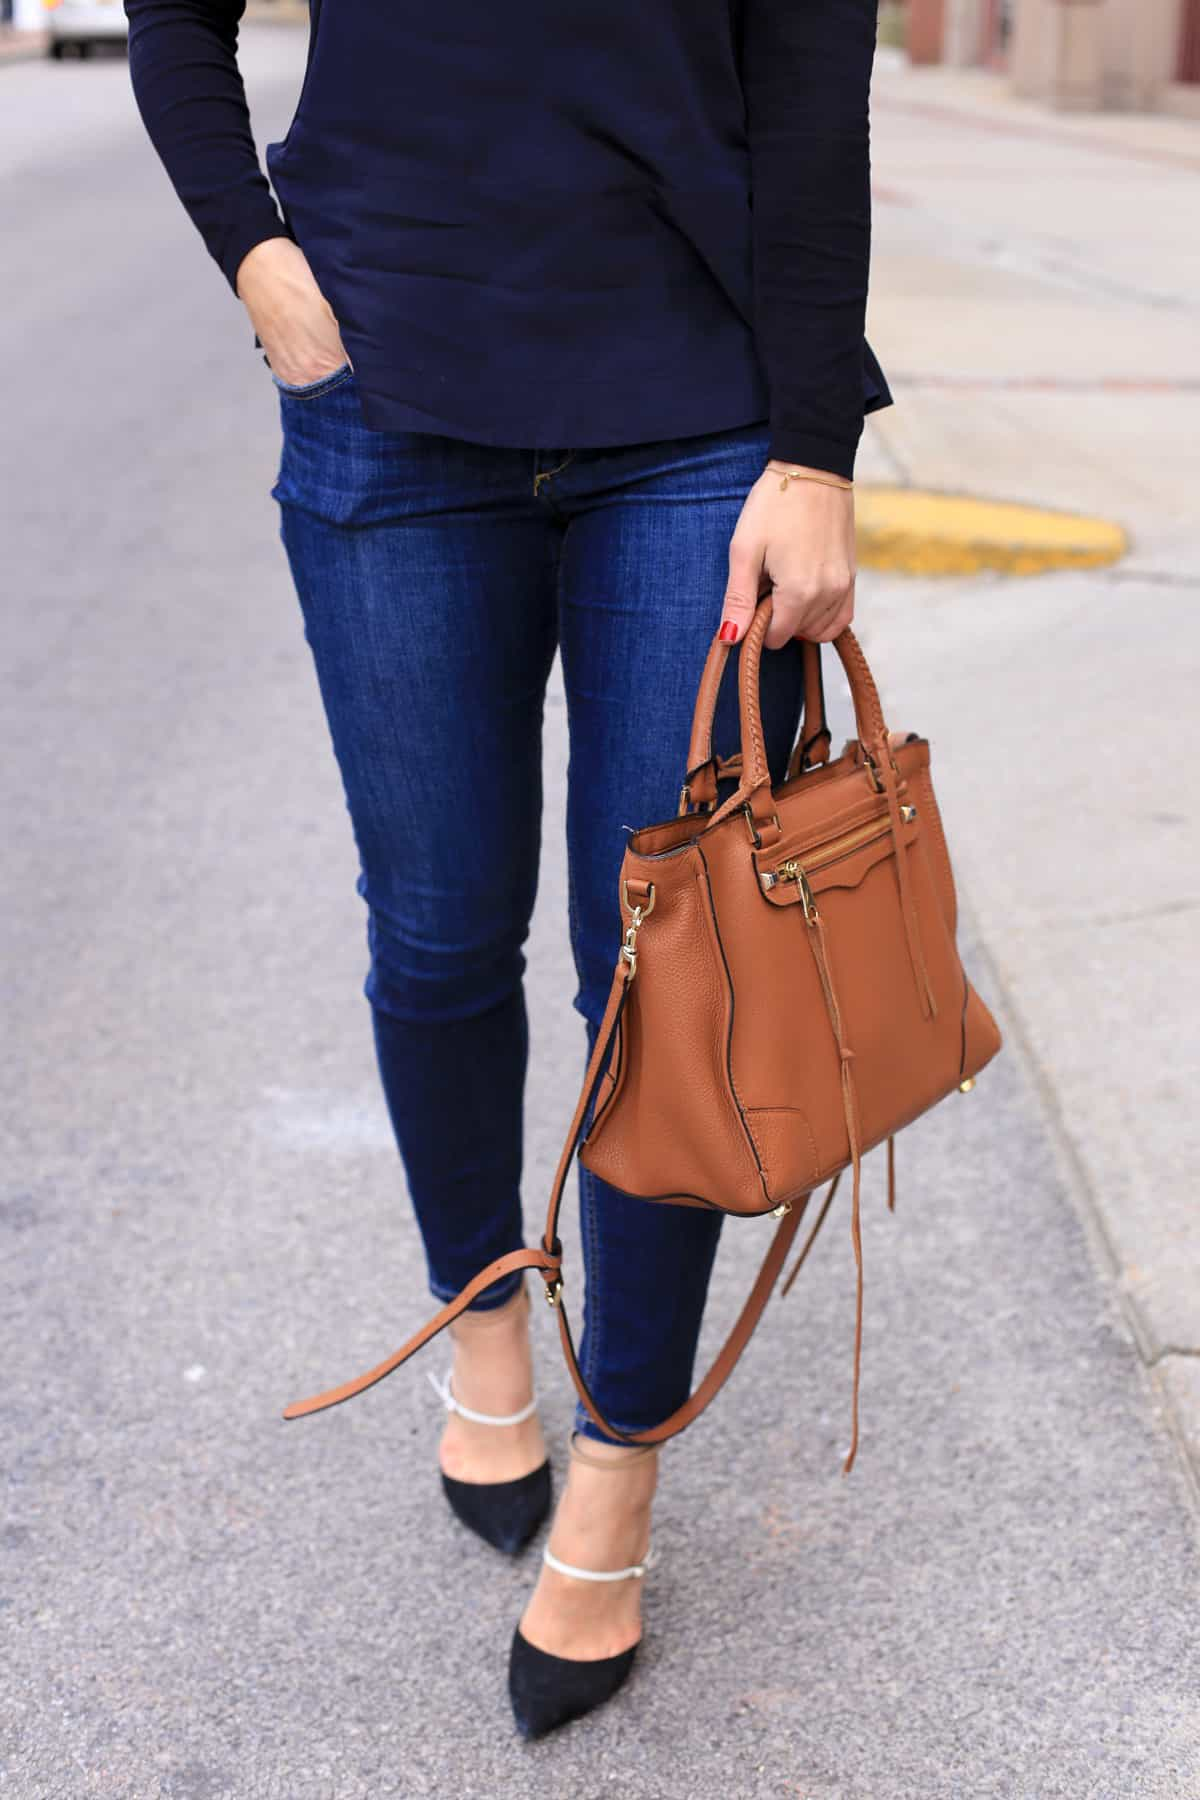 My Style Vita outfit - Jeans and Cos top with high heels - @mystylevita